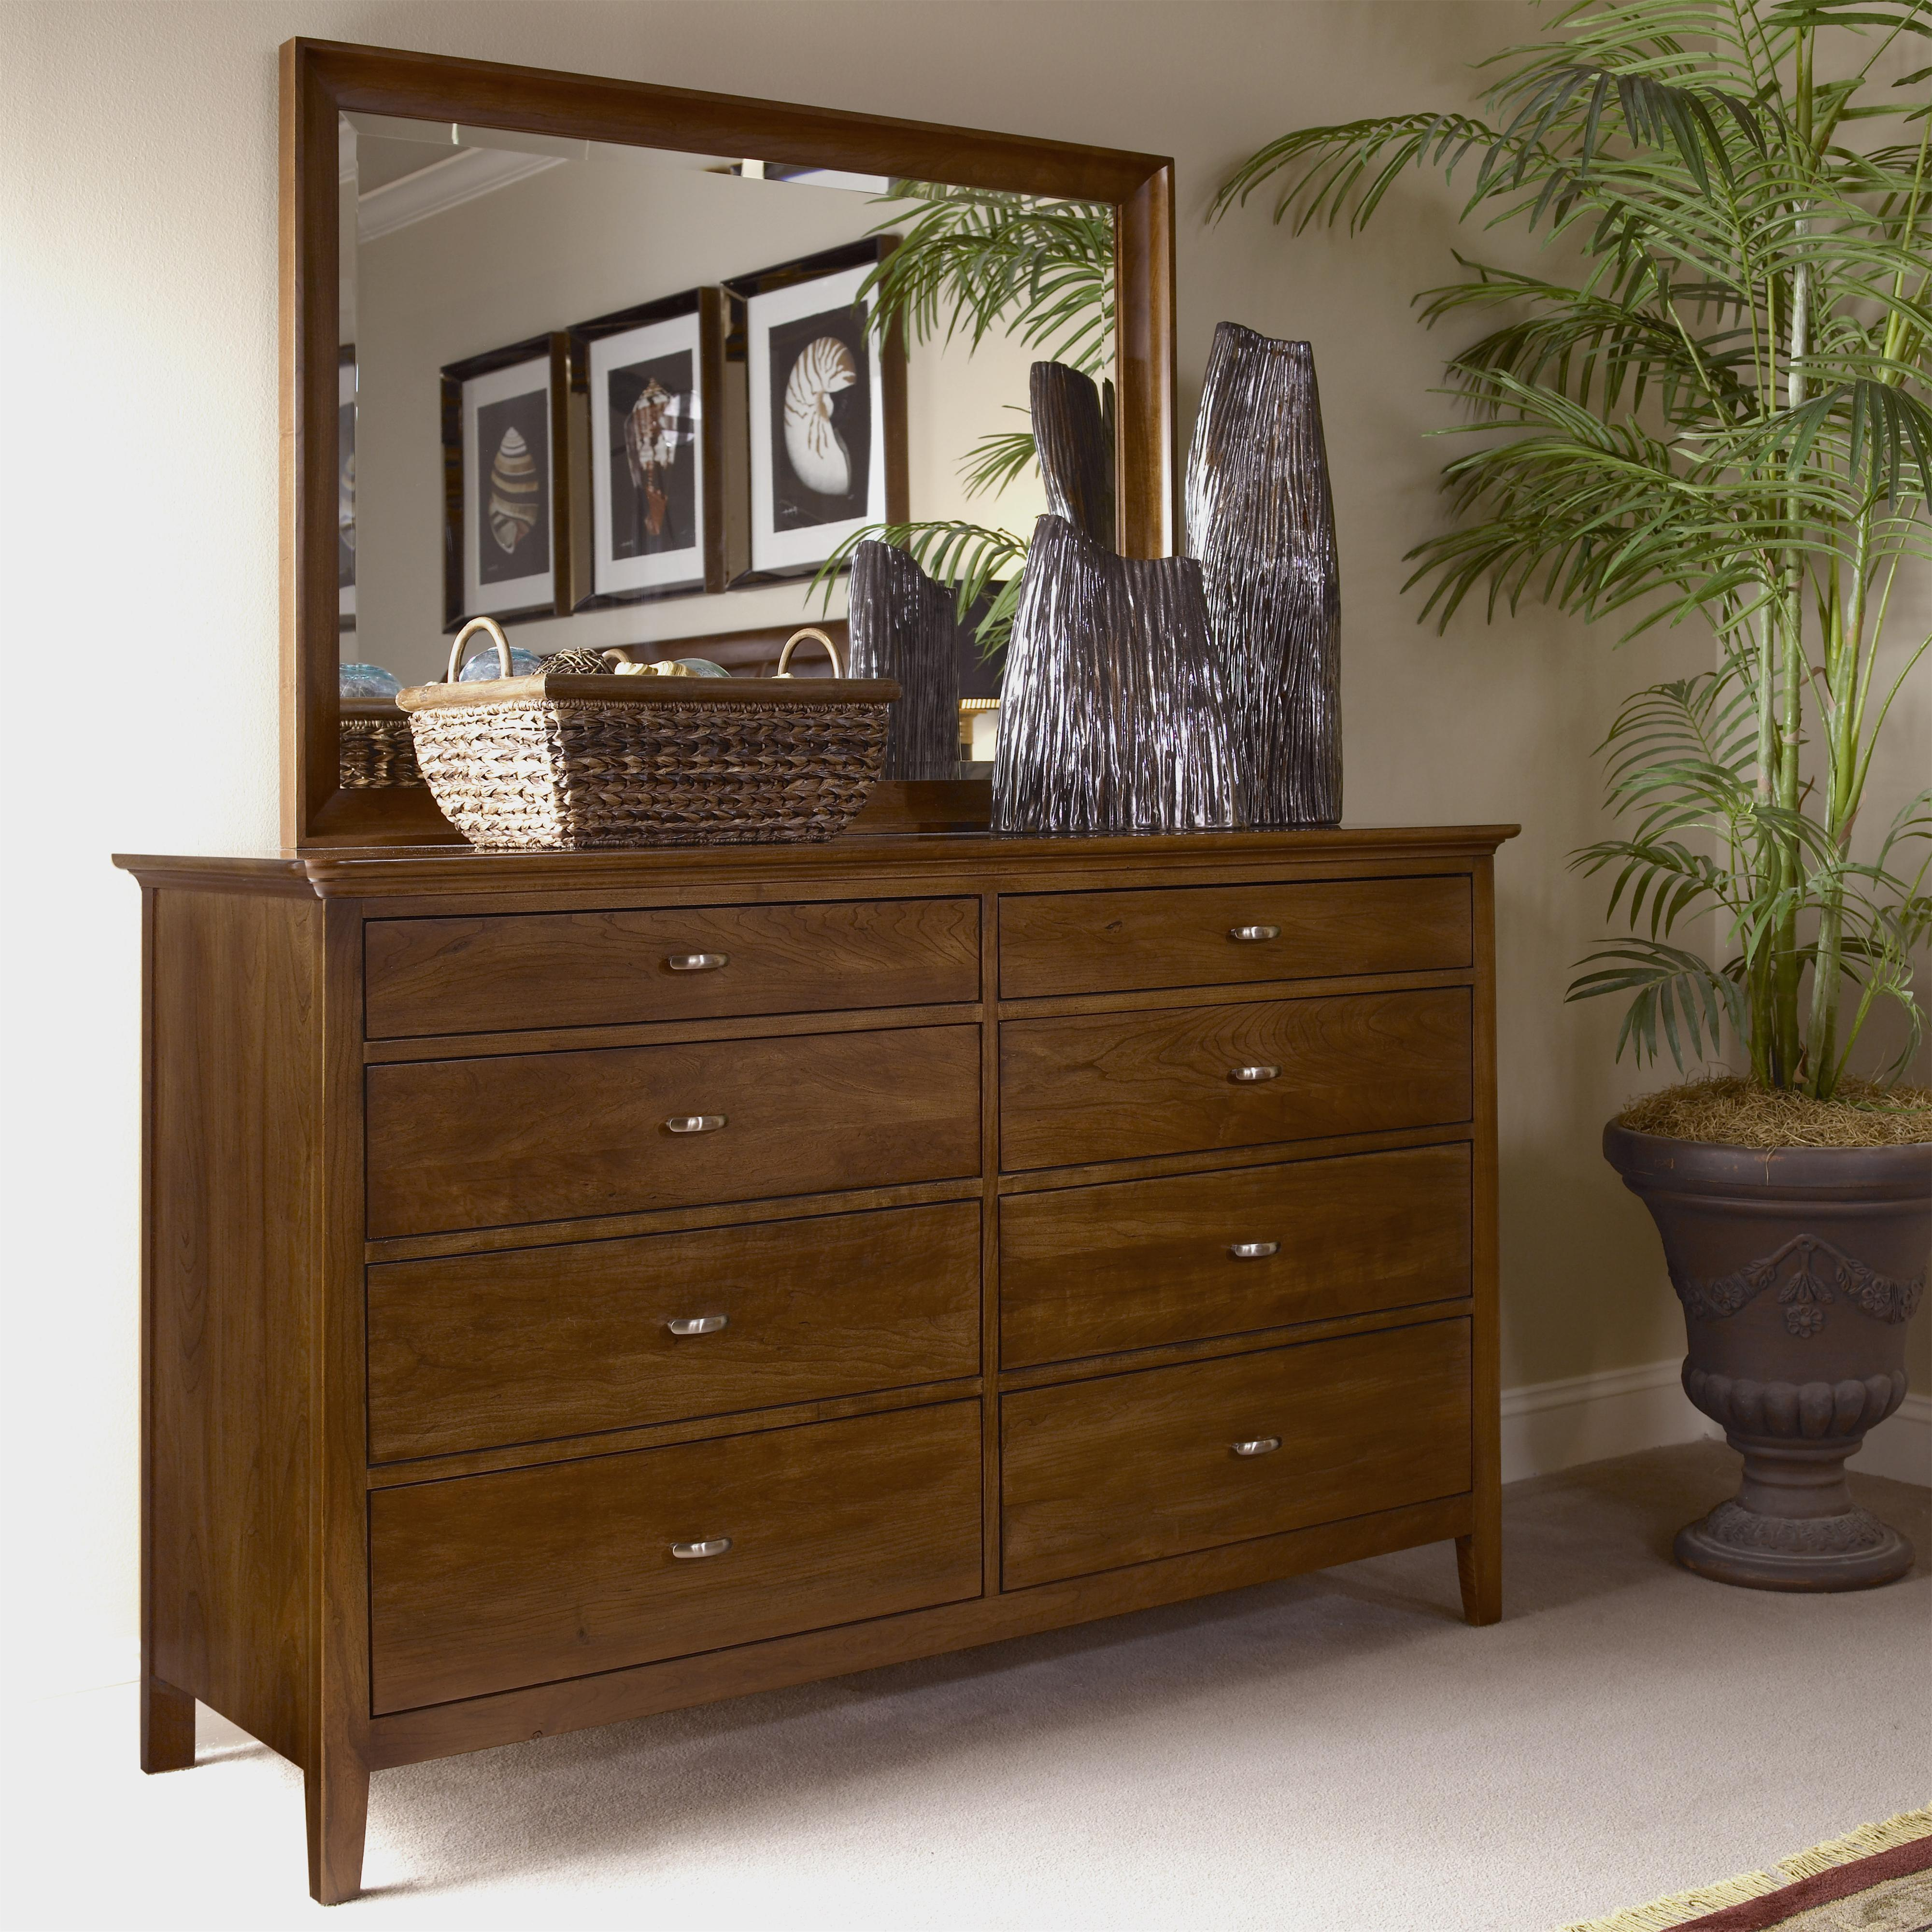 Cherry Park Double Dresser & Landscape Mirror Combo by Kincaid Furniture at Johnny Janosik